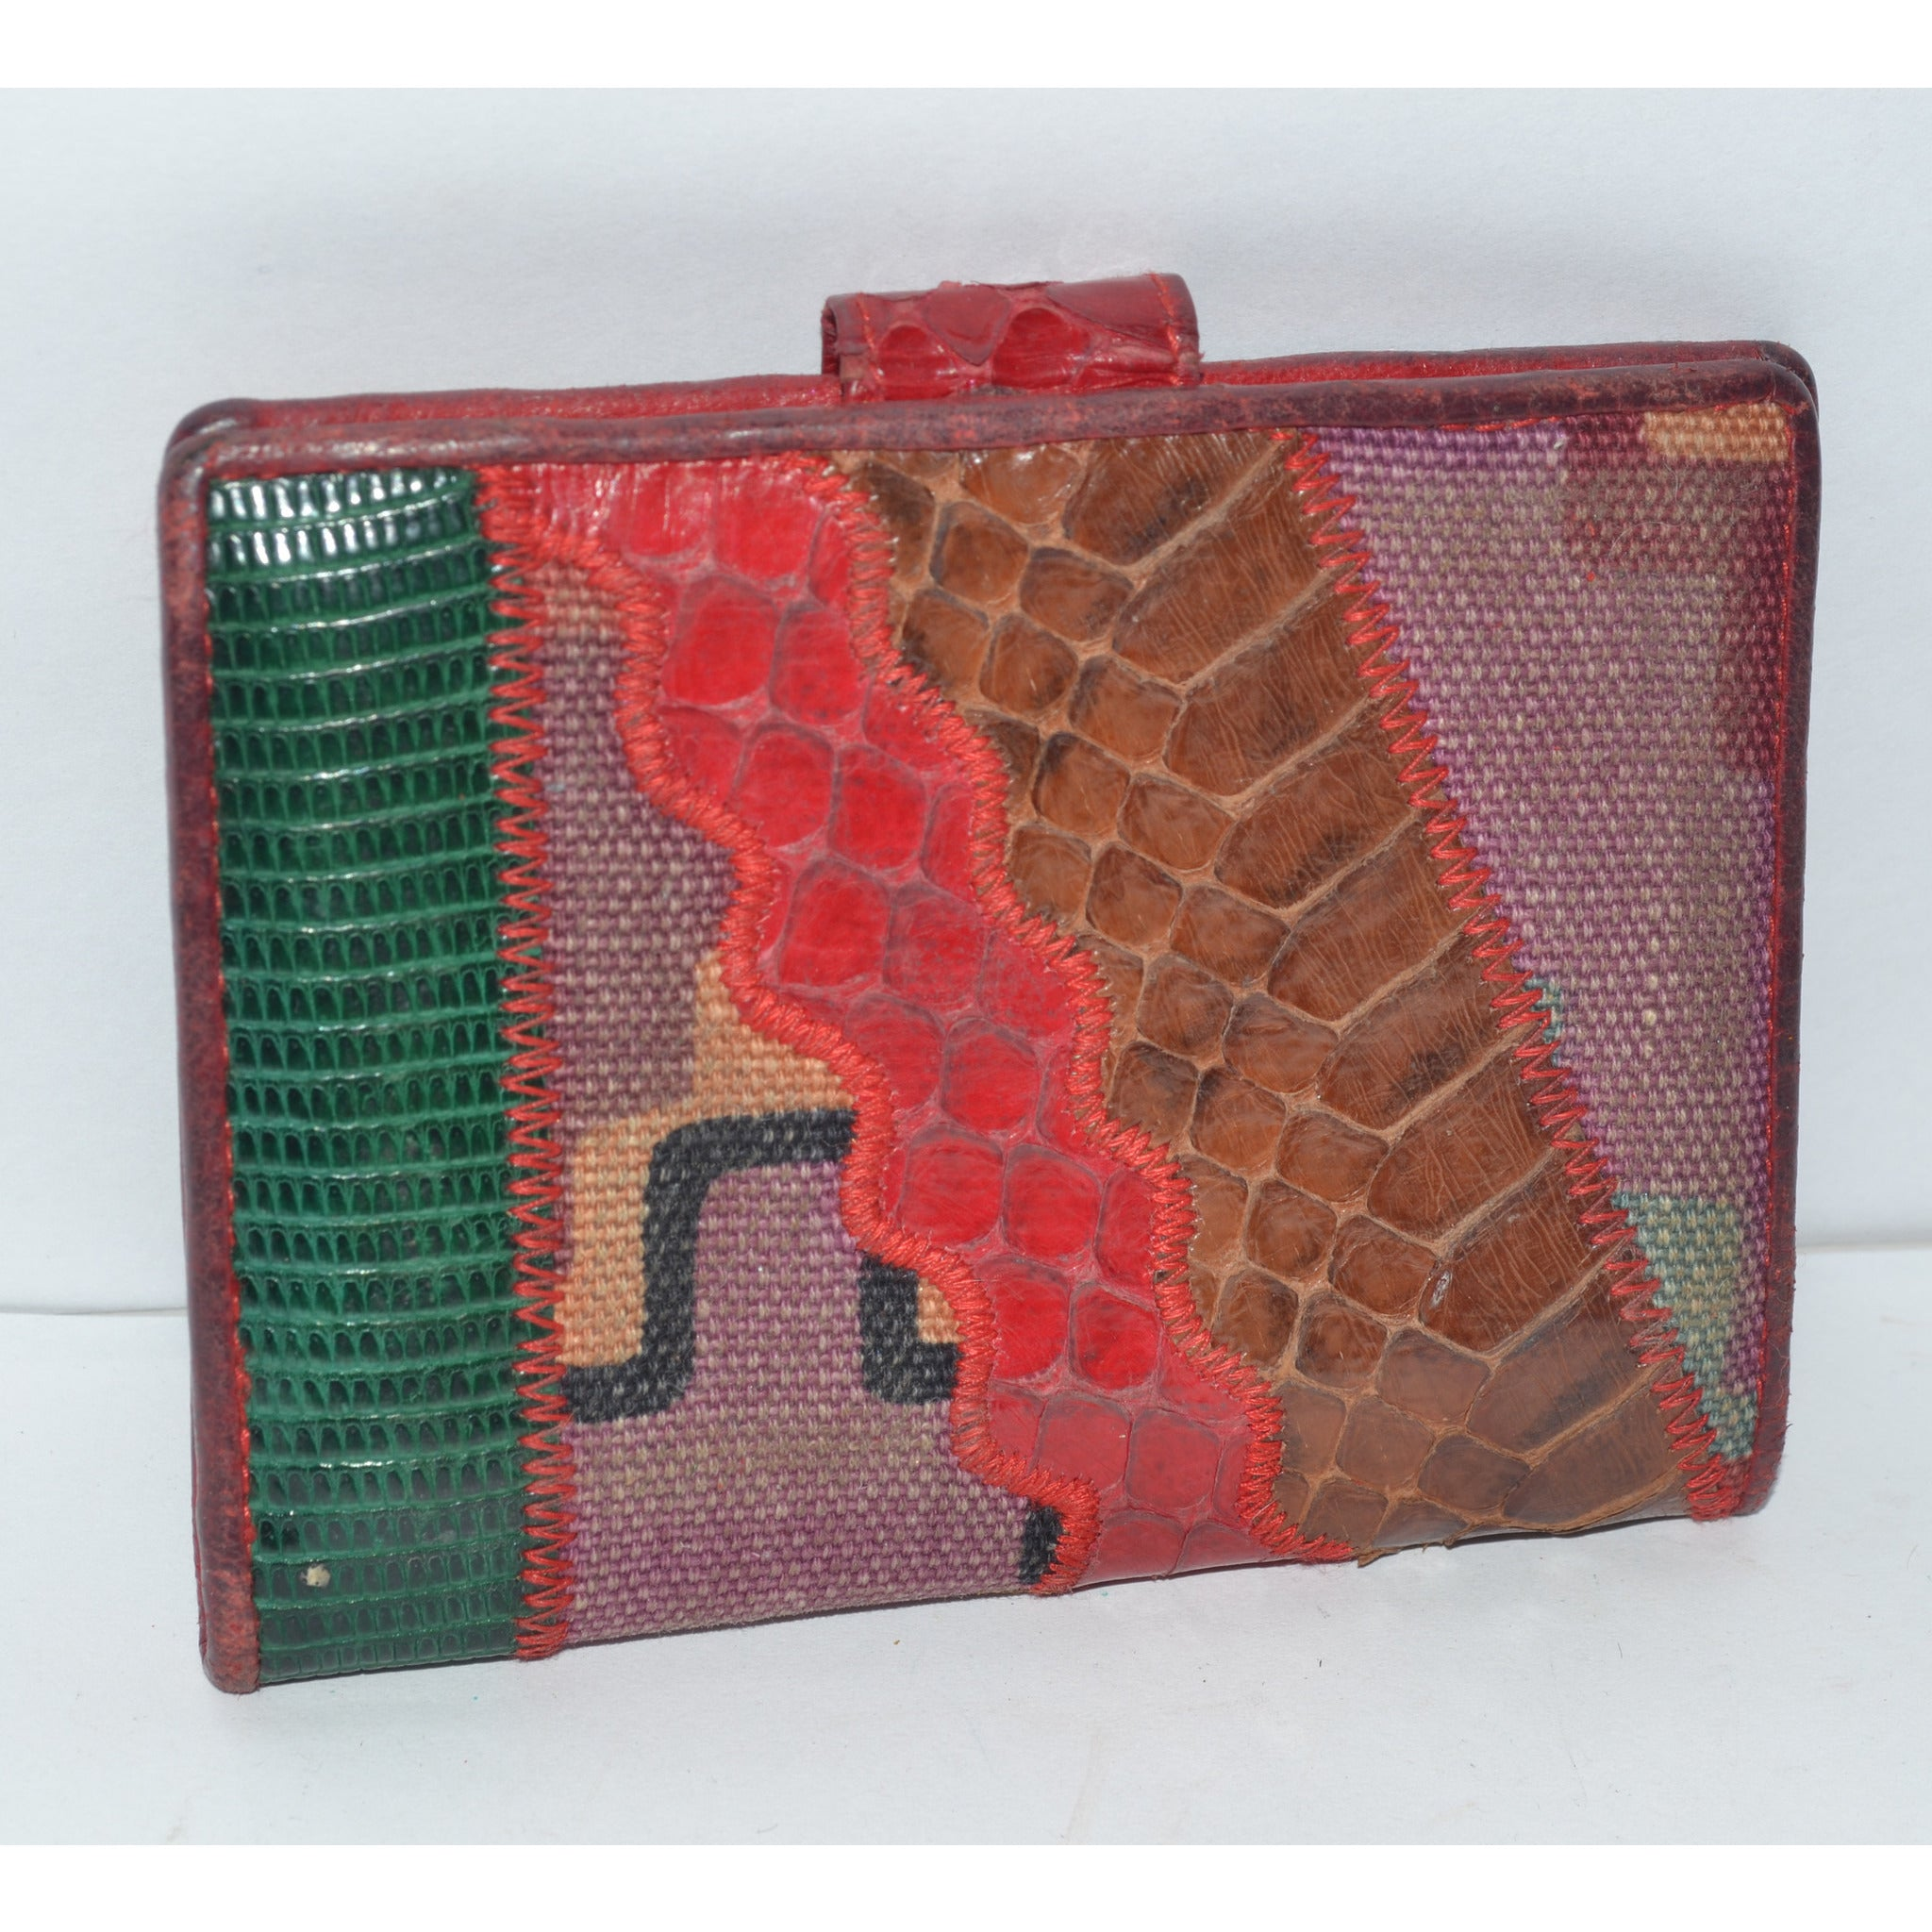 Vintage Snakeskin Patch Wallet By Sharif